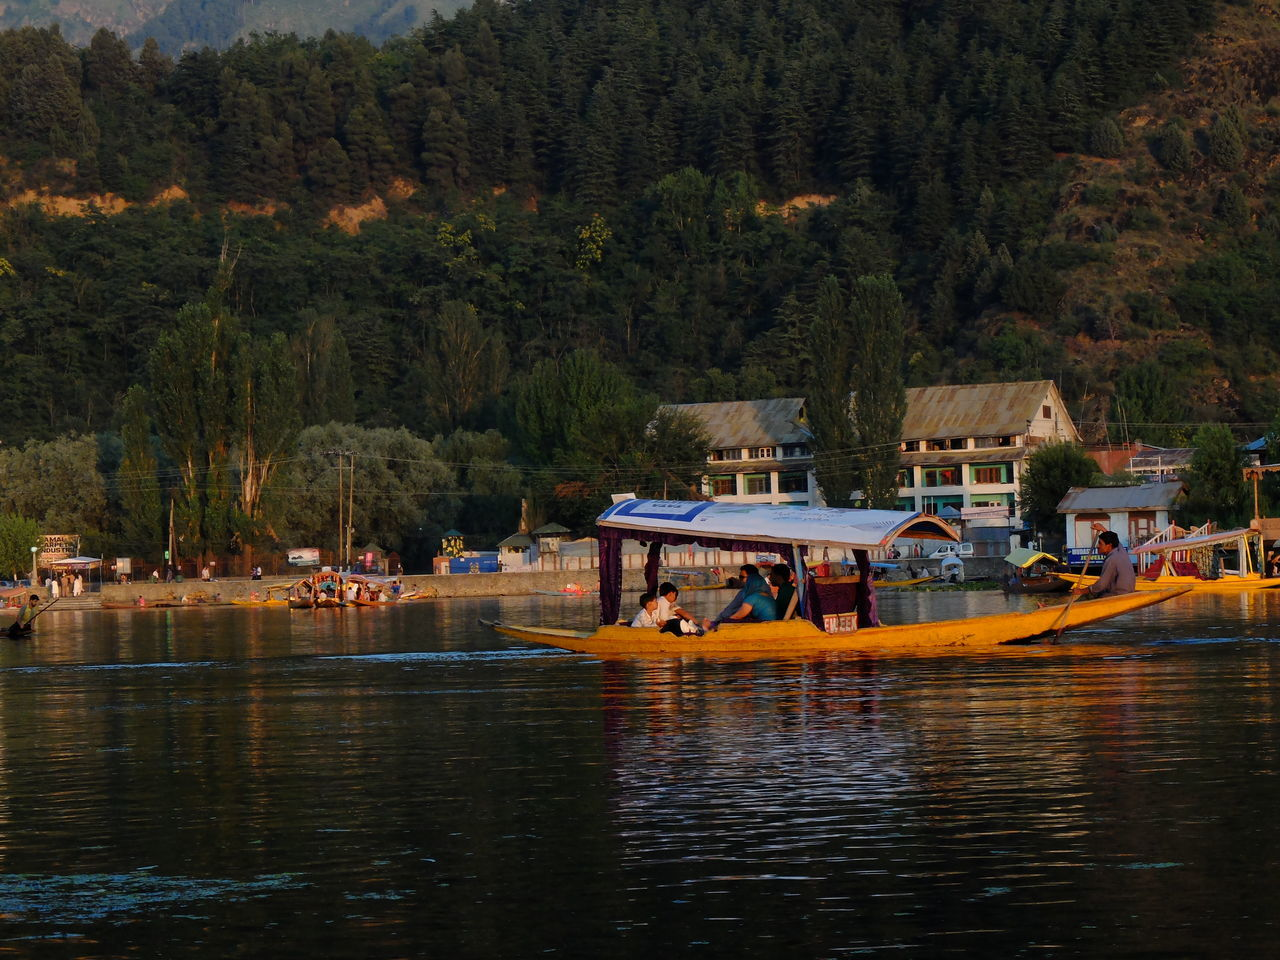 Beauty In Nature Boat Day Forest Growth Mode Of Transport Moored Nature Nautical Vessel No People Outdoors Sailing Scenics Sky Srinagar Kashmir Transportation Tree Water Waterfront